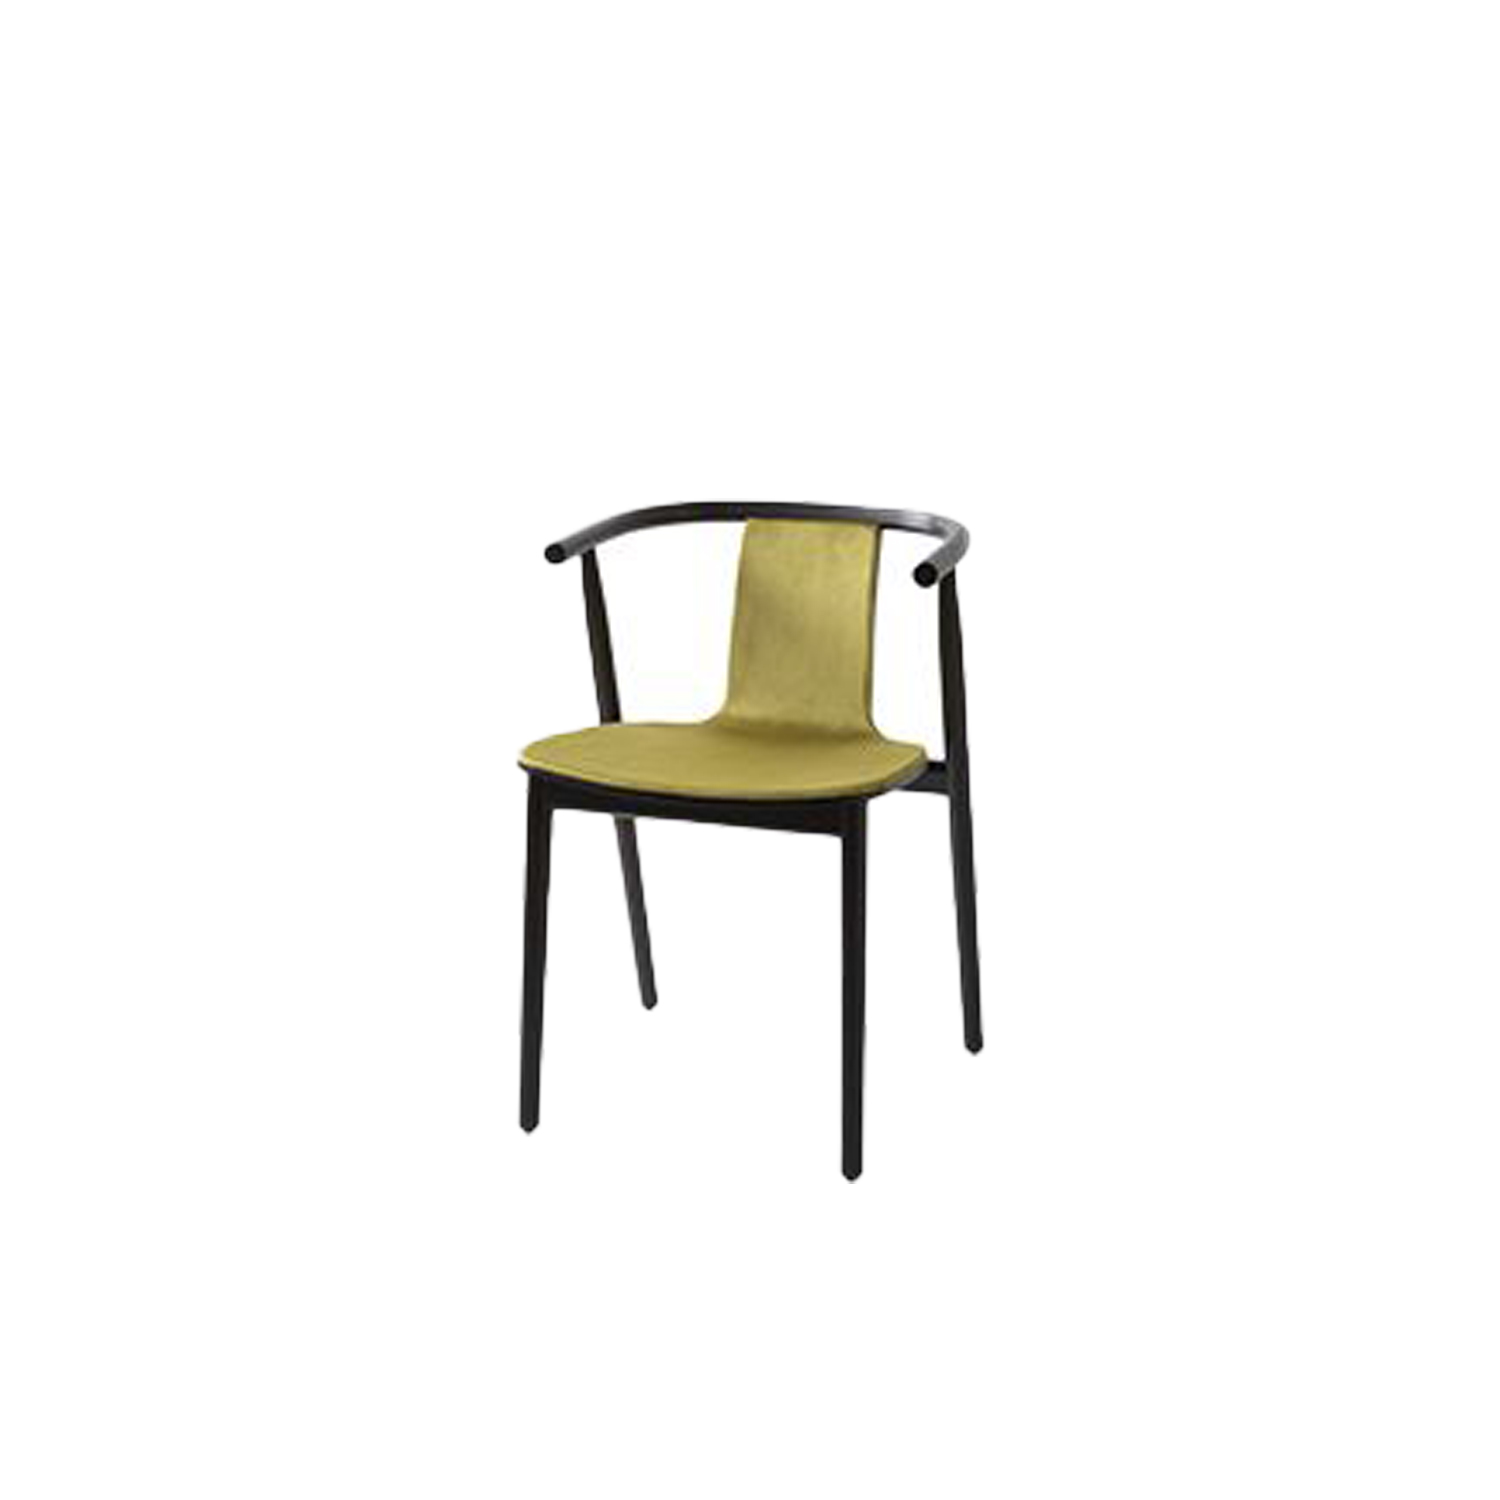 Bac Chair Upholstered